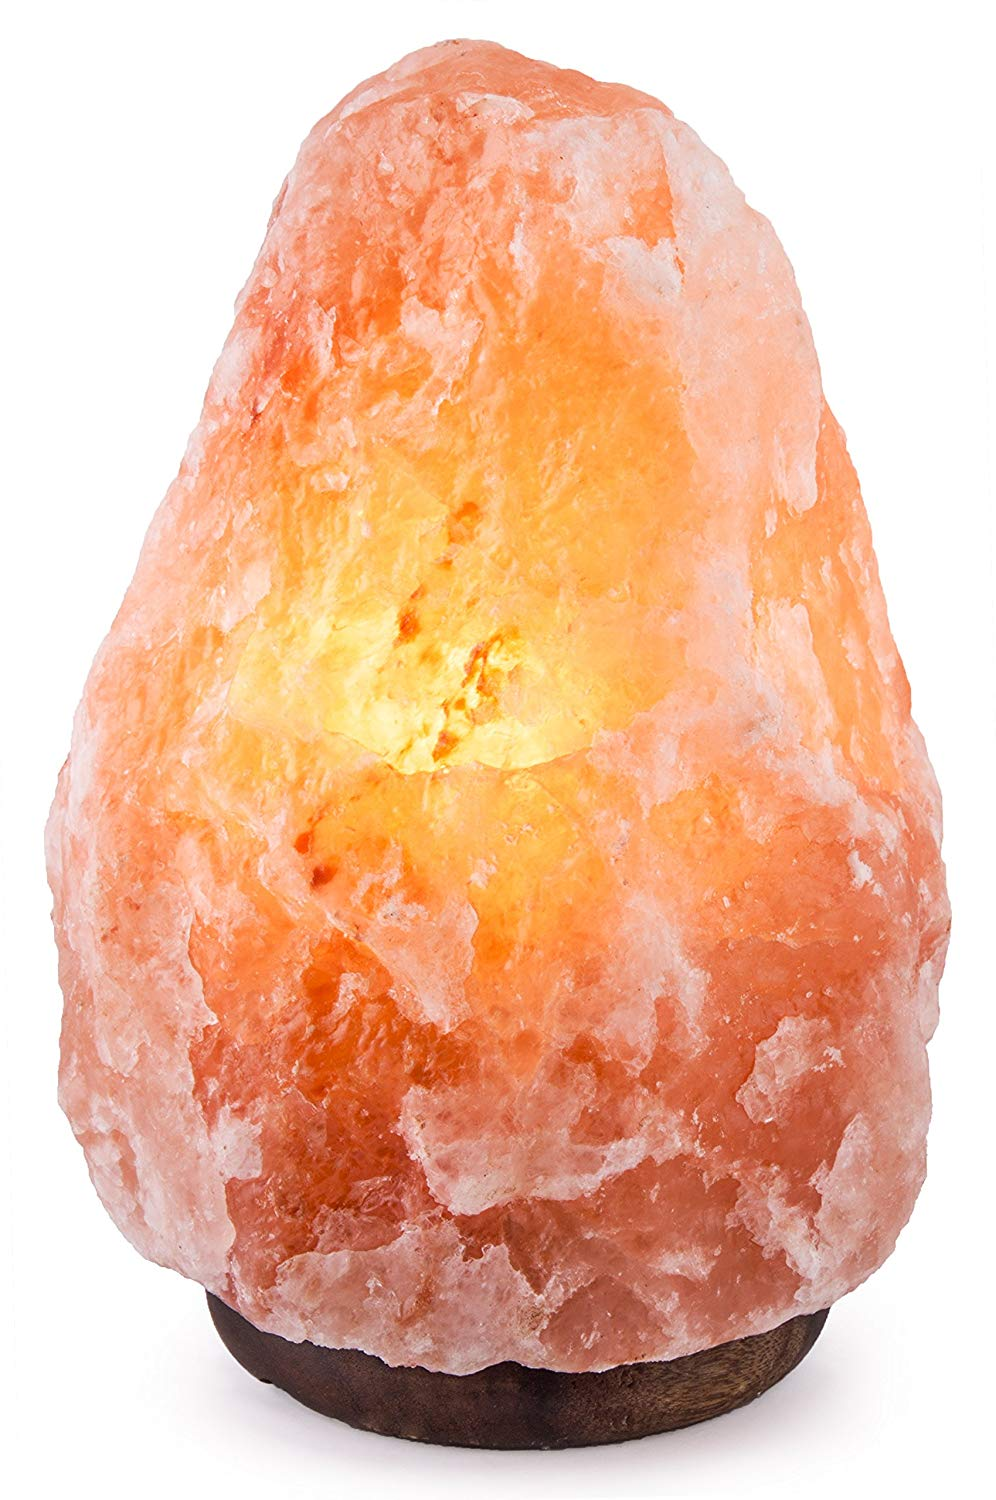 "CRYSTAL DECOR 7"" to 8"", 6-8 lbs Dimmable Hand Crafted Natural Himalayan Salt Lamp On Wooden Base.jpg"